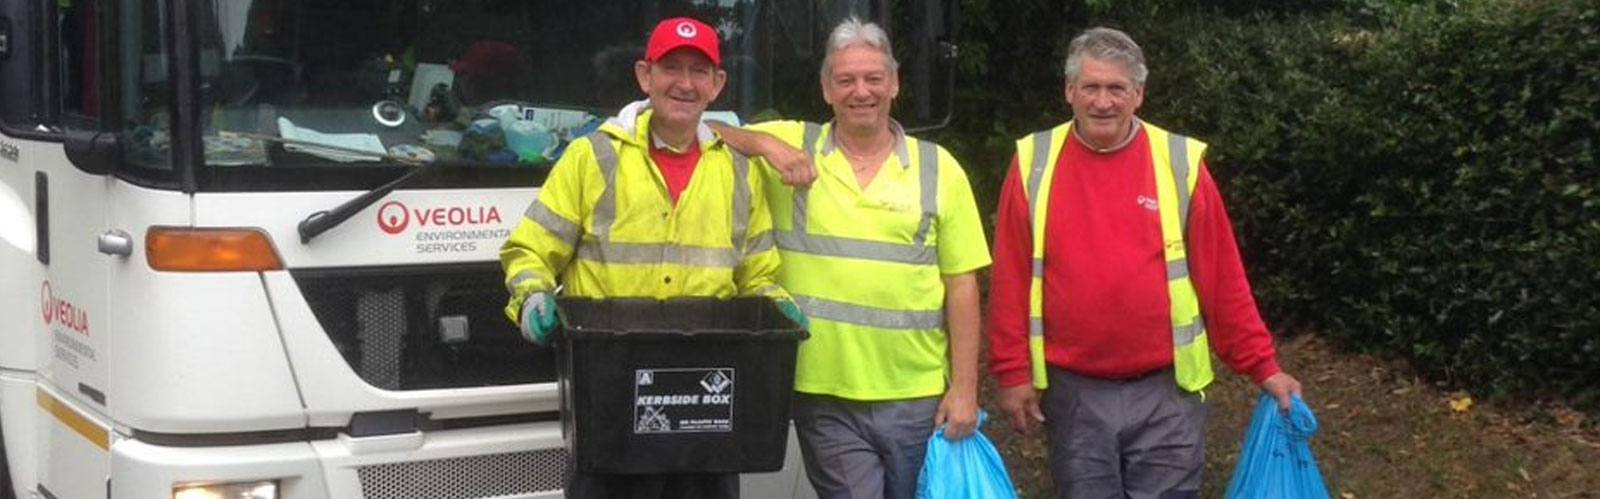 Let's celebrate the fantastic work & thank Wokingham's bin crews, as they just keep going!